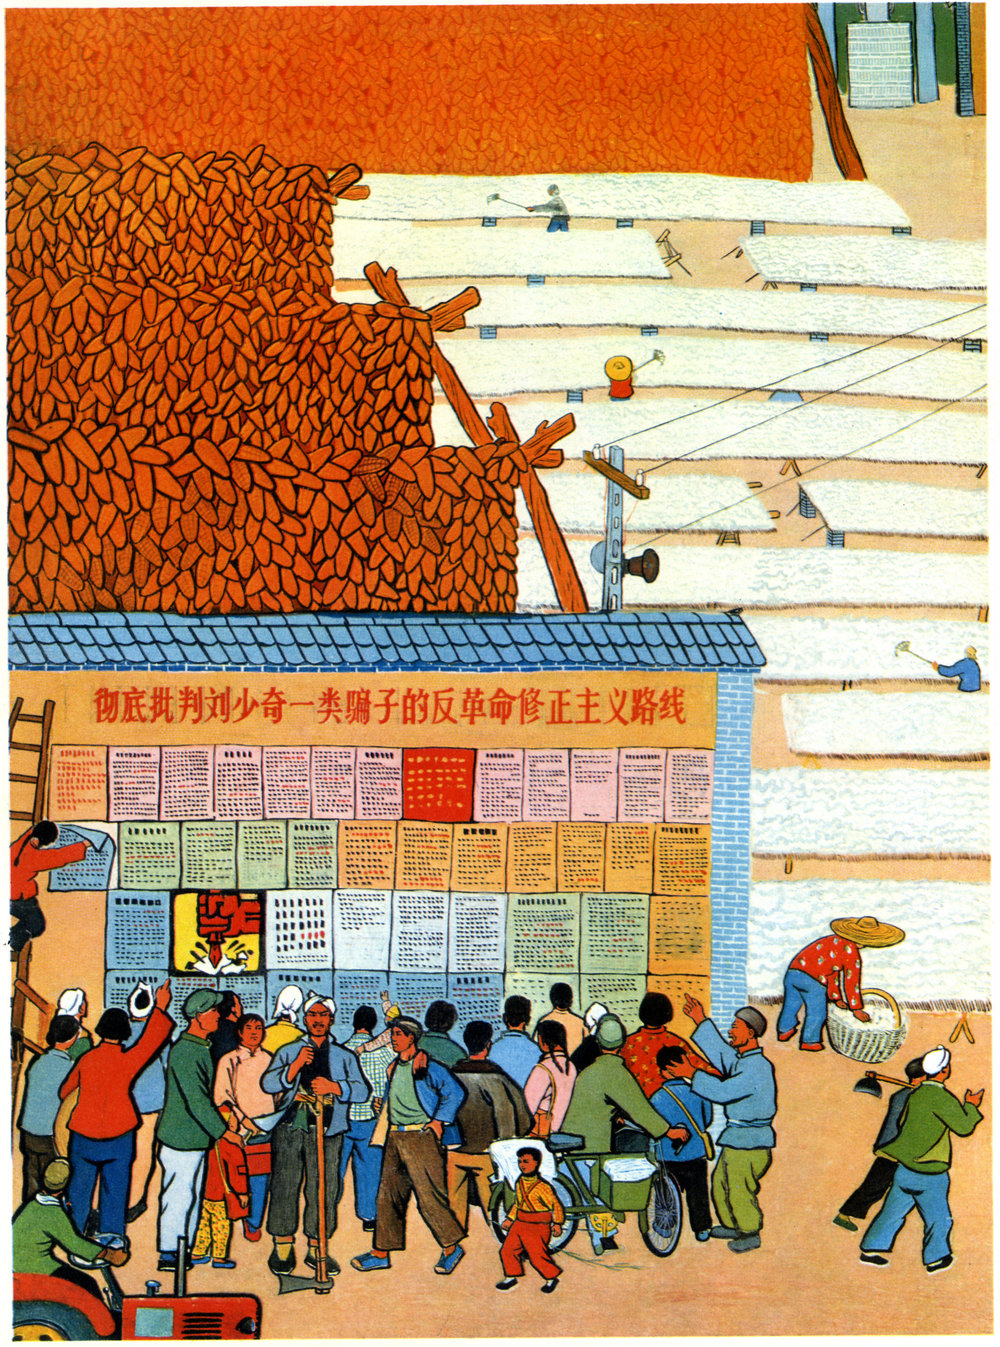 The Chinese Grasp Revolution . Reproduced in  Peasant Paintings from Huhsien County . 1974.